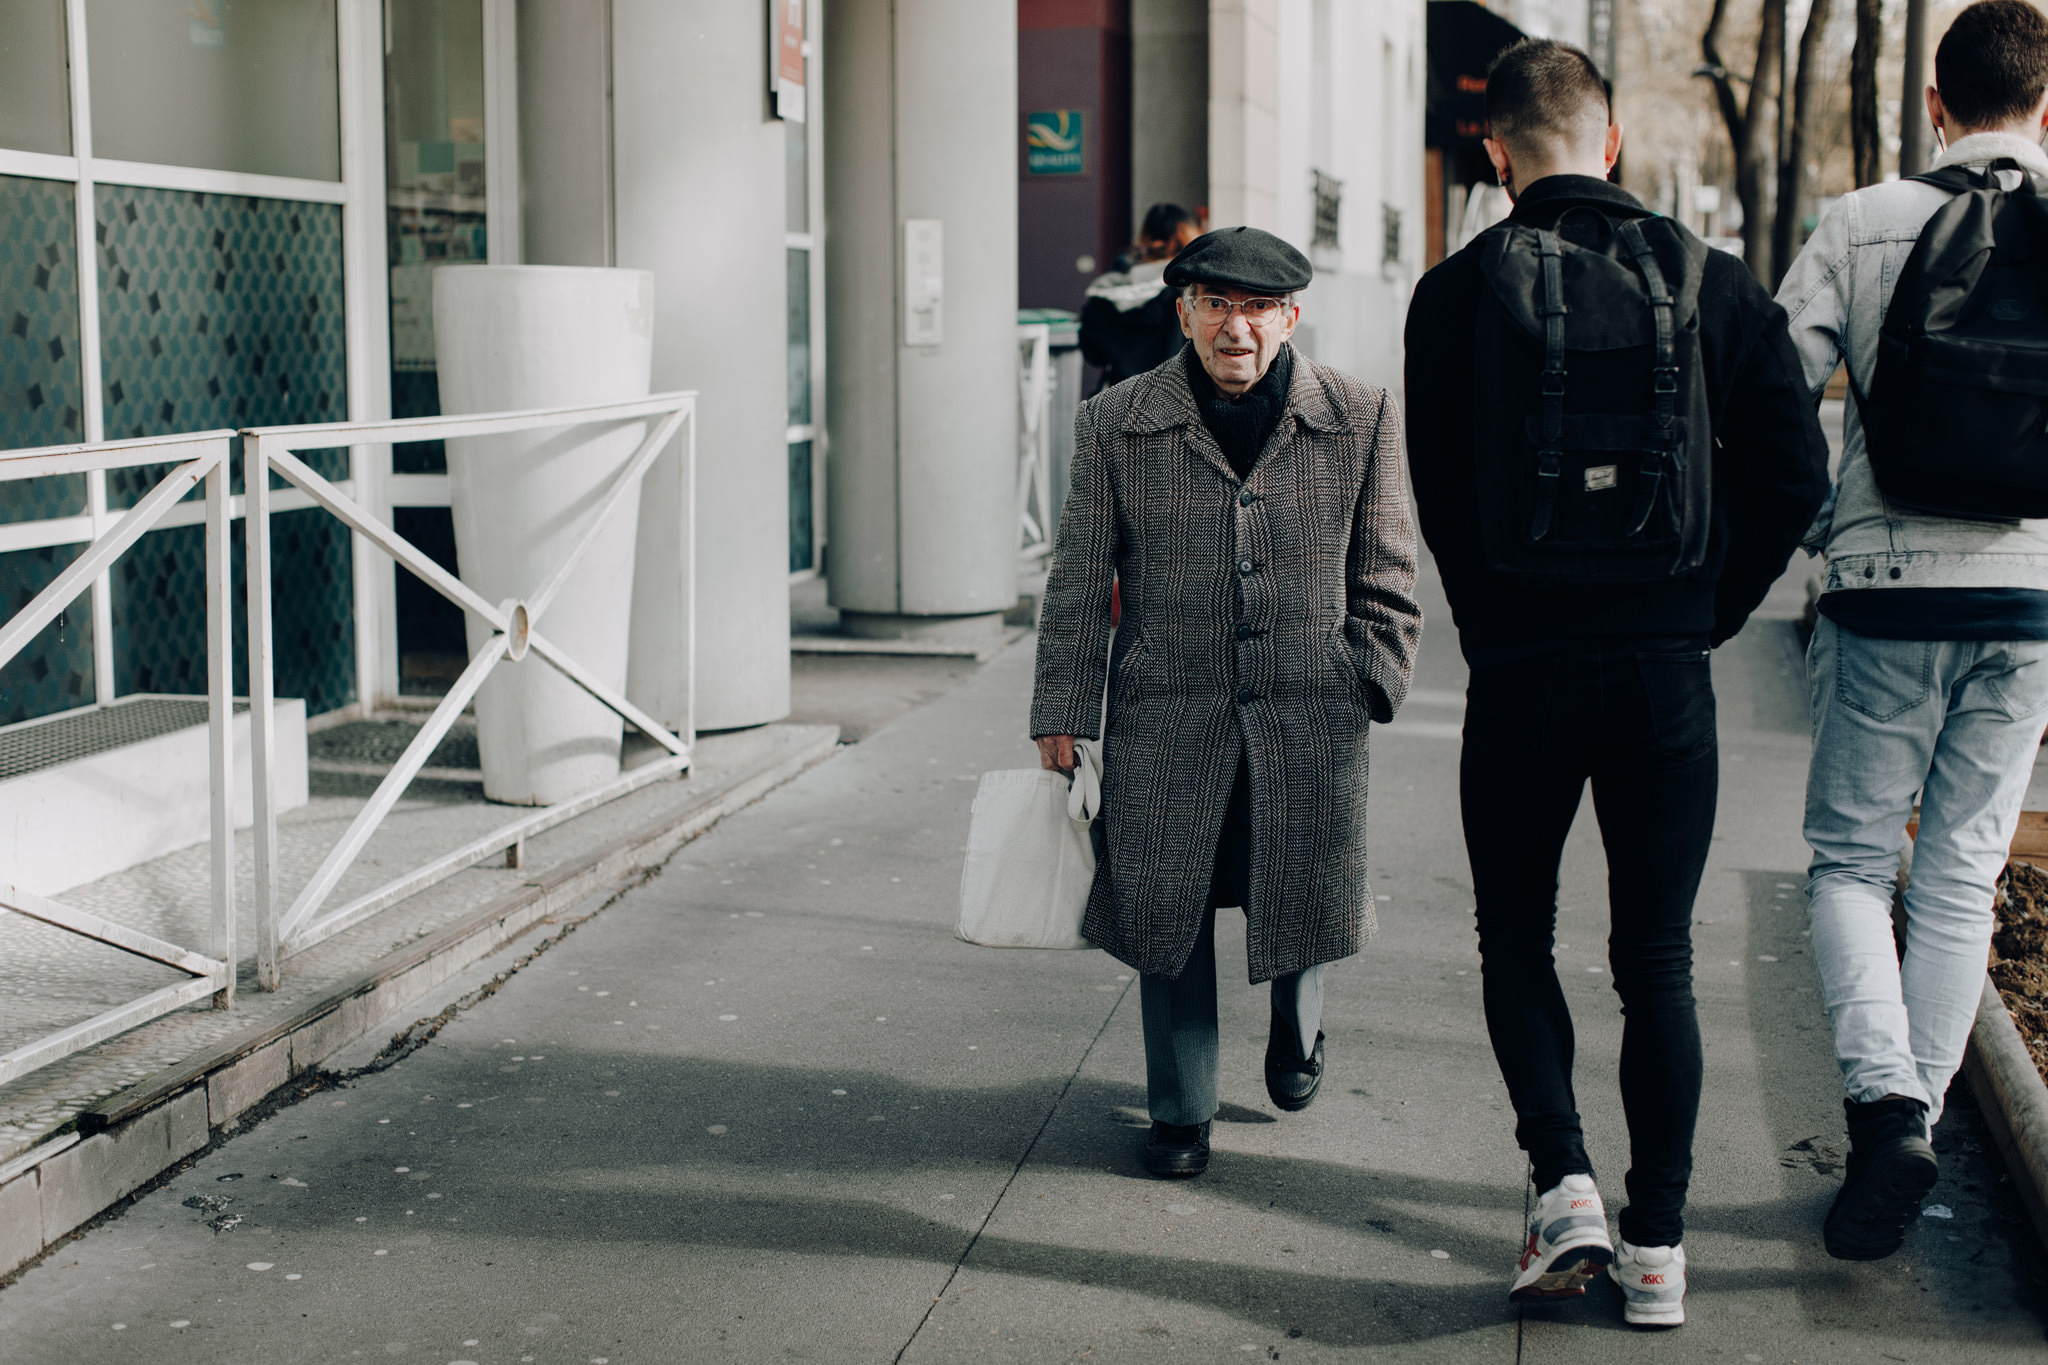 Old French man walking the streets of Paris